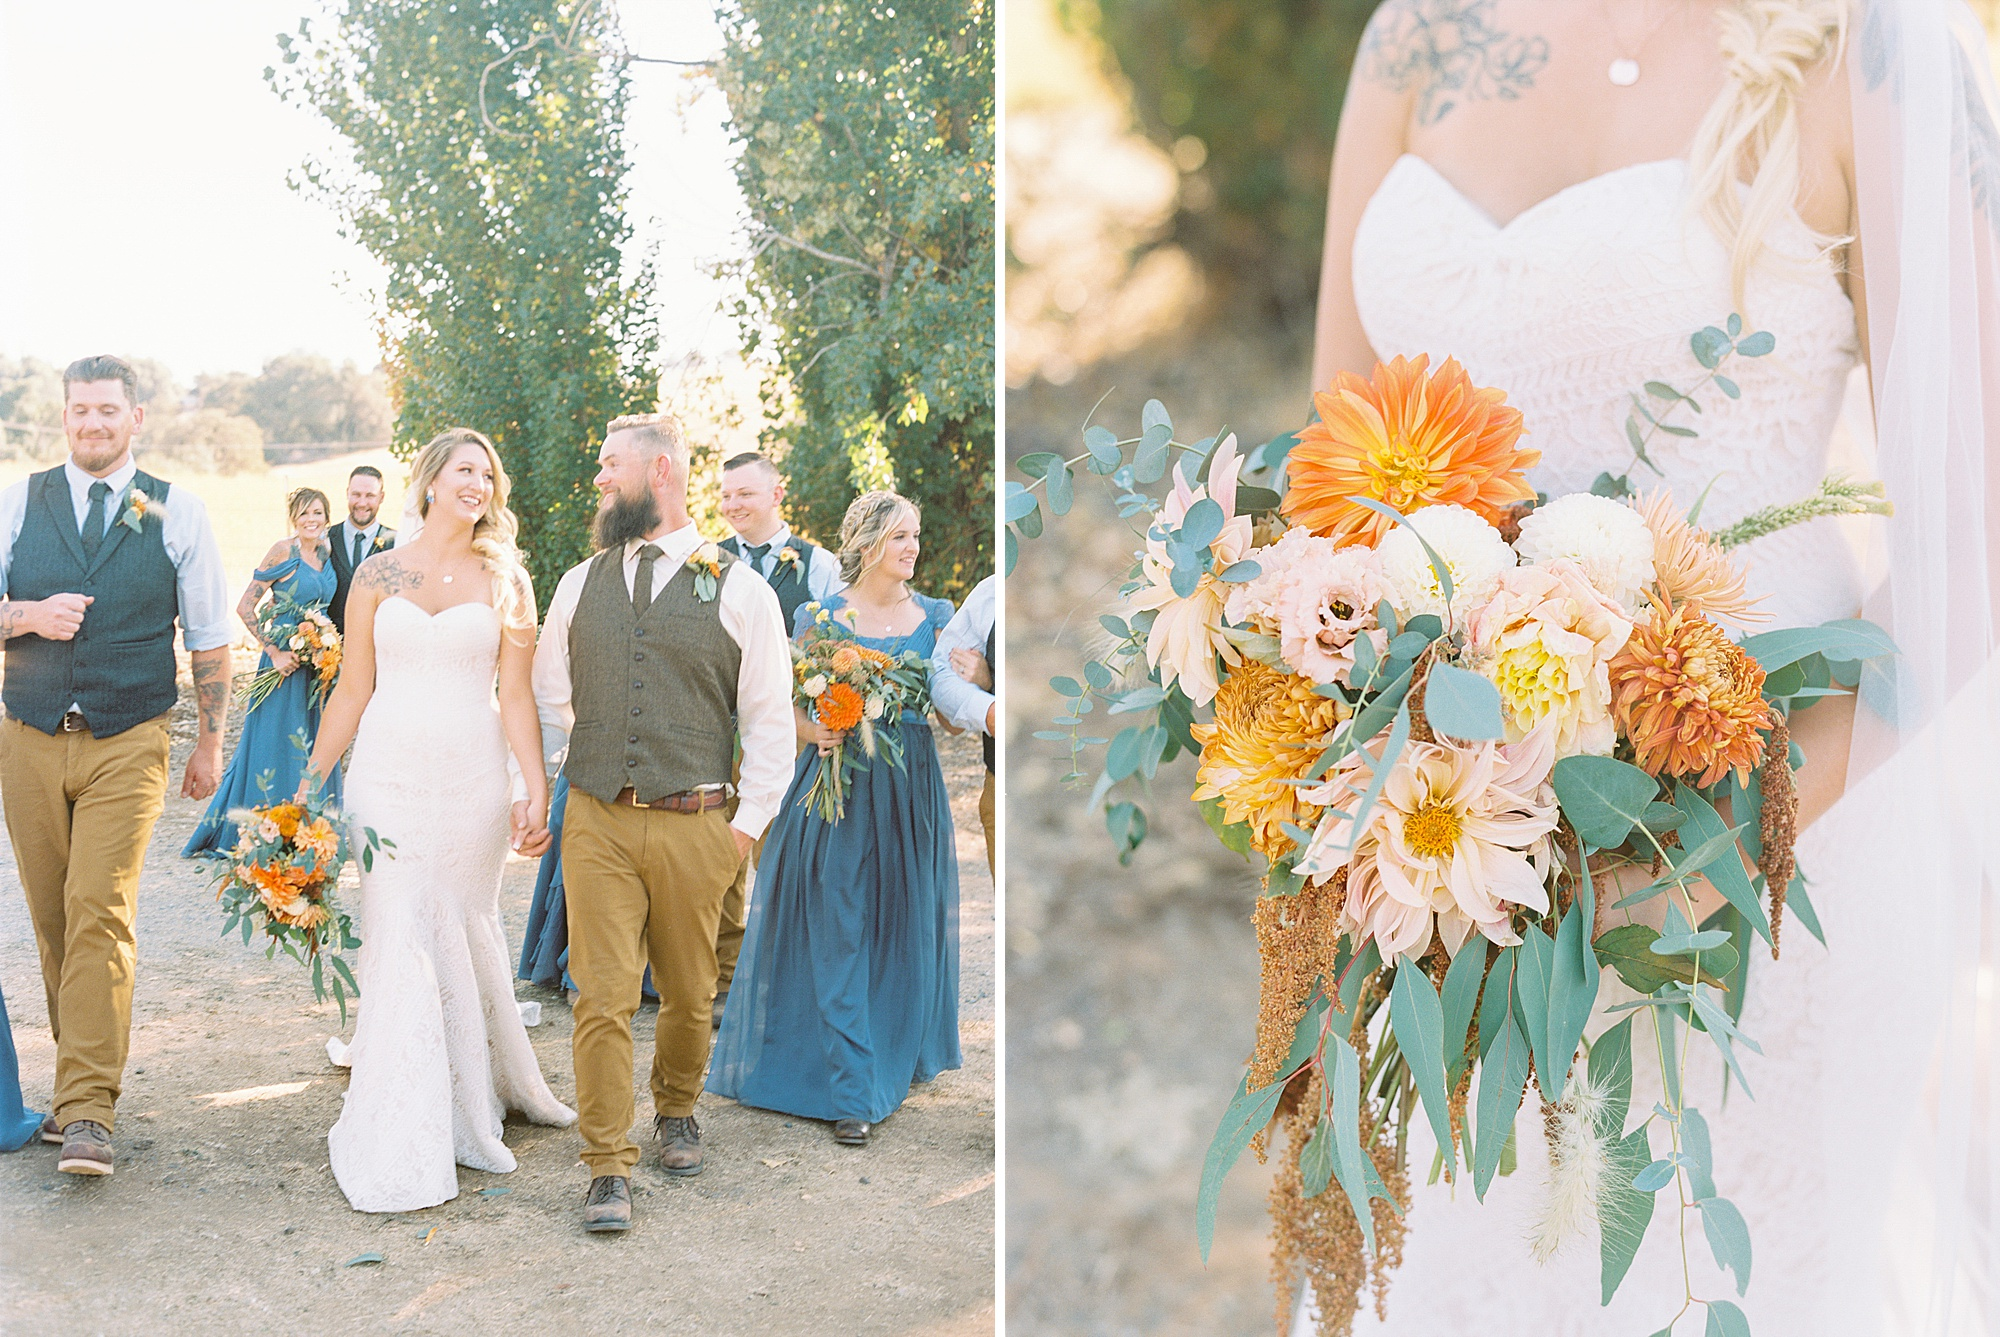 Sonora Wedding Photographer - Tiffany and Jesse - Ashley Baumgartner - Private Estate Summer Wedding_0093.jpg